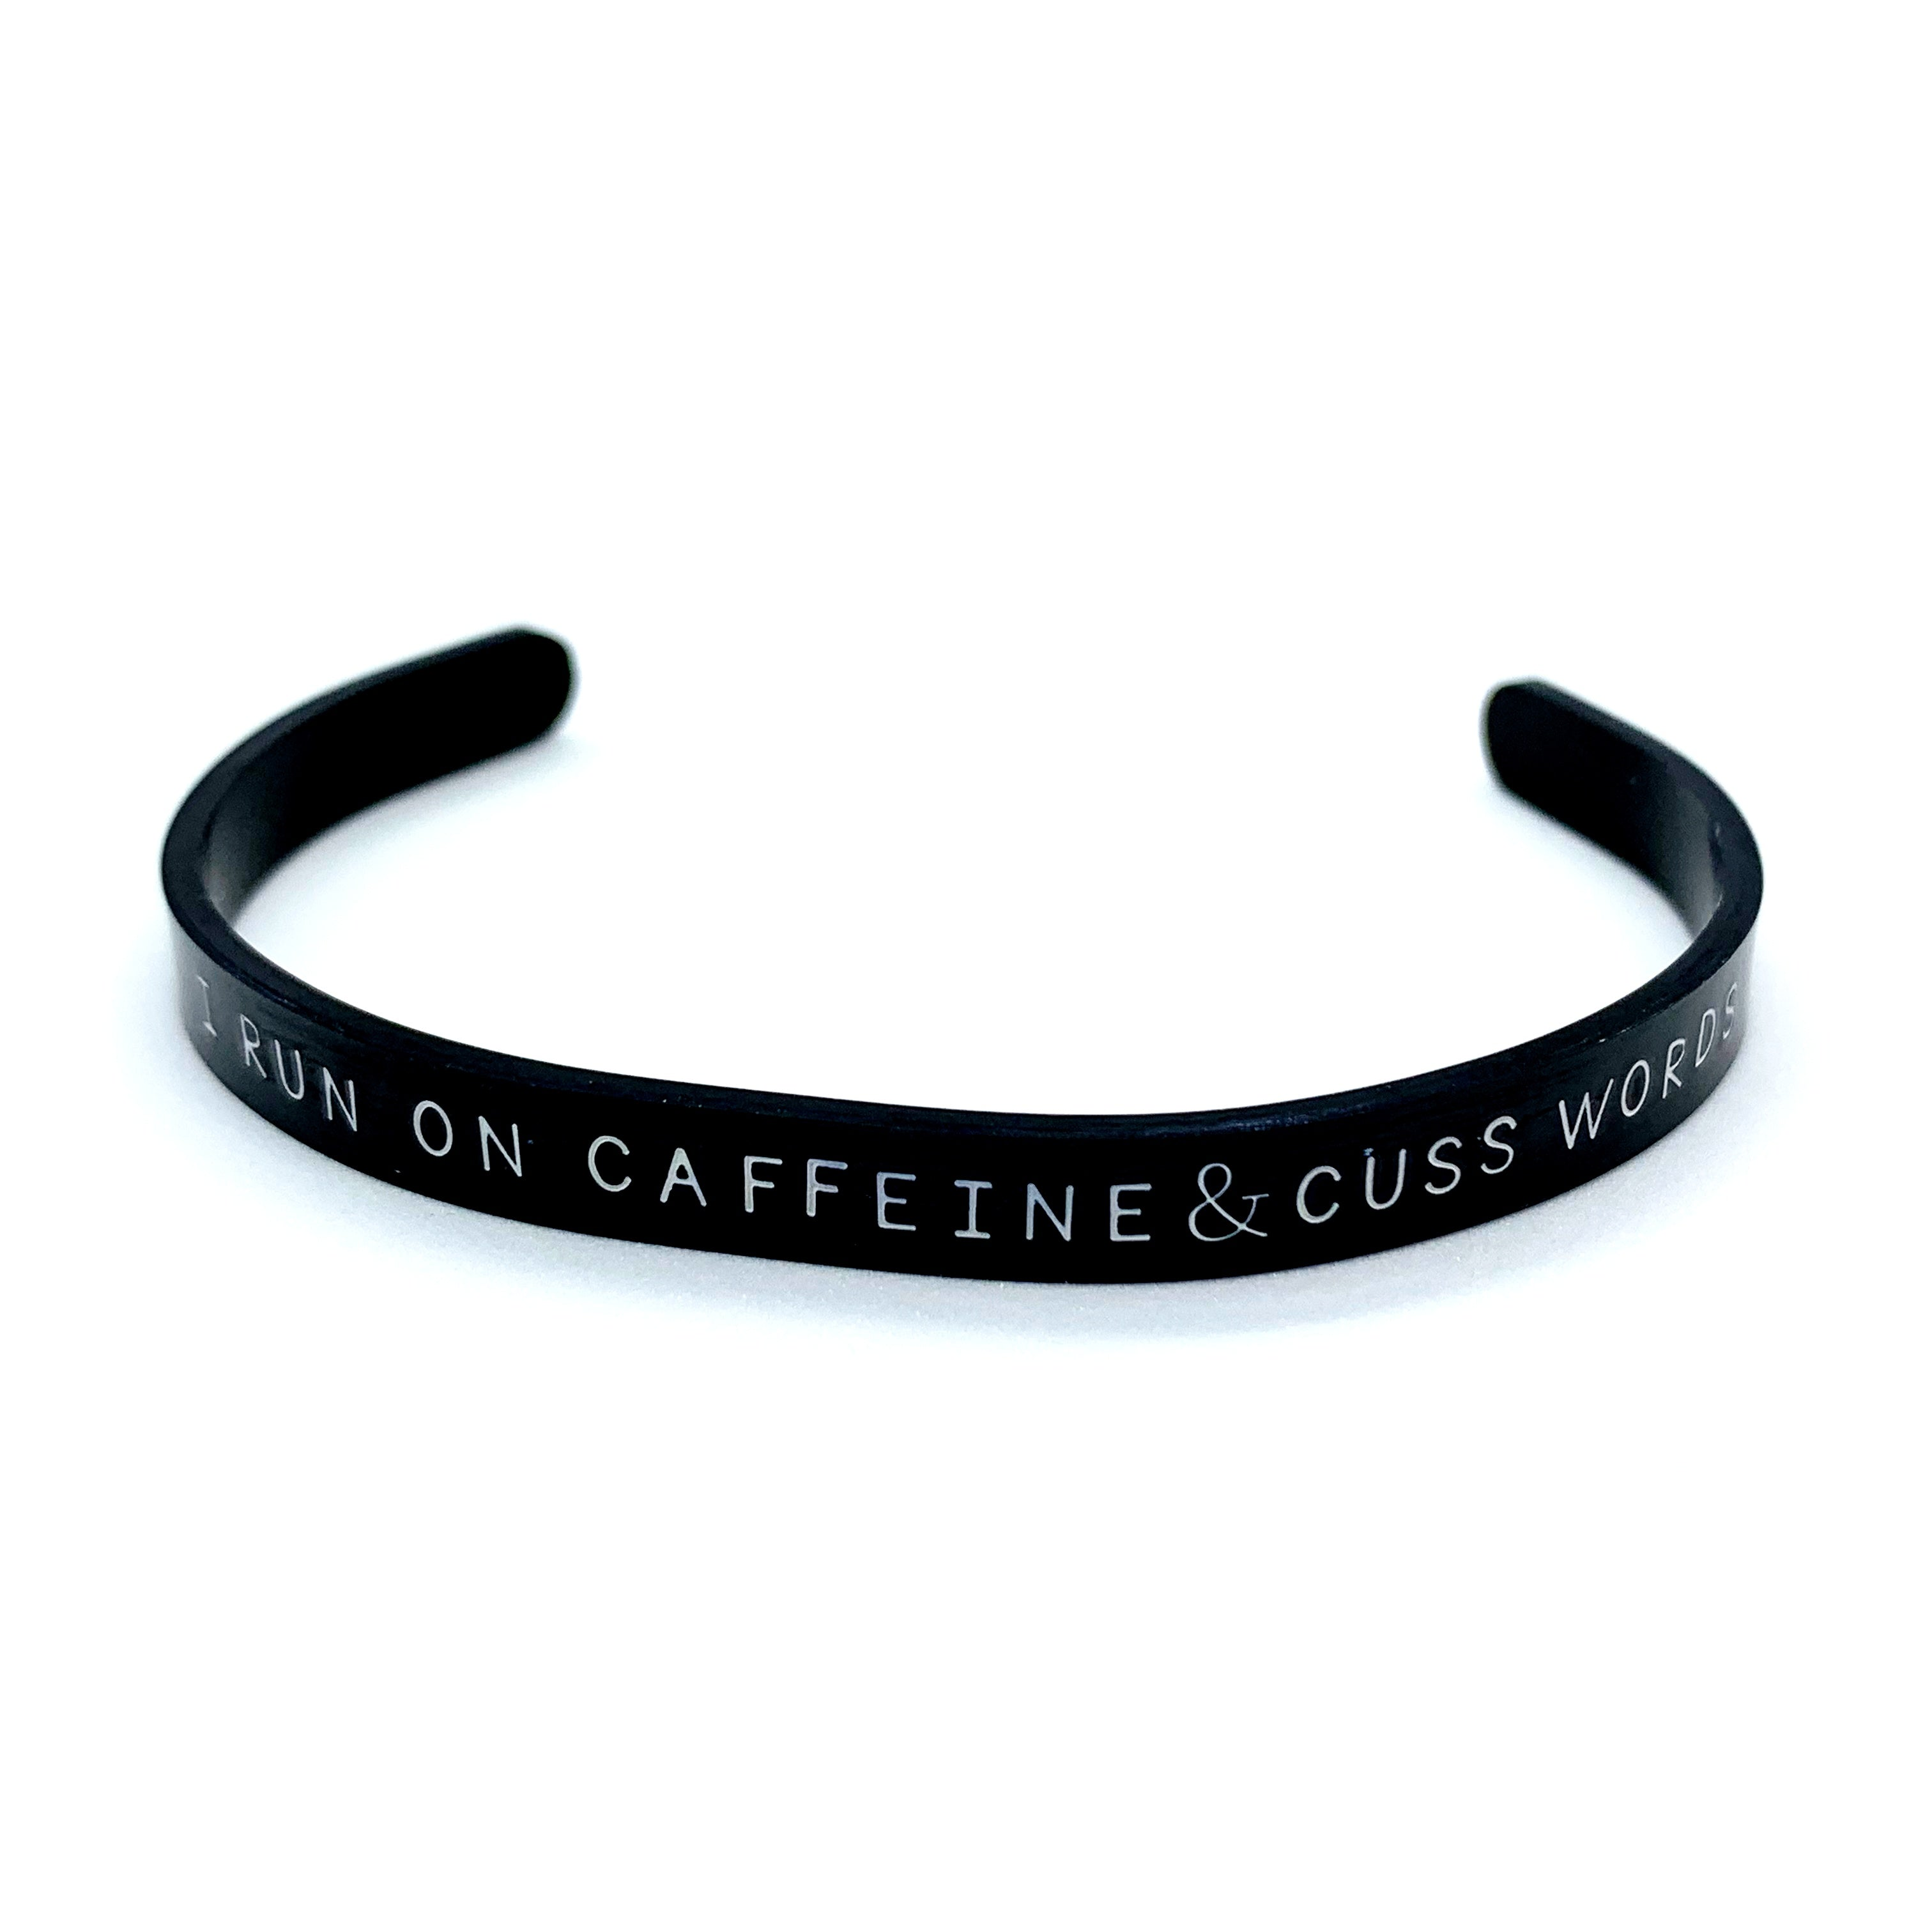 ¼ inch Stainless Steel Black Cuff - I Run On Caffeine & Cuss Words